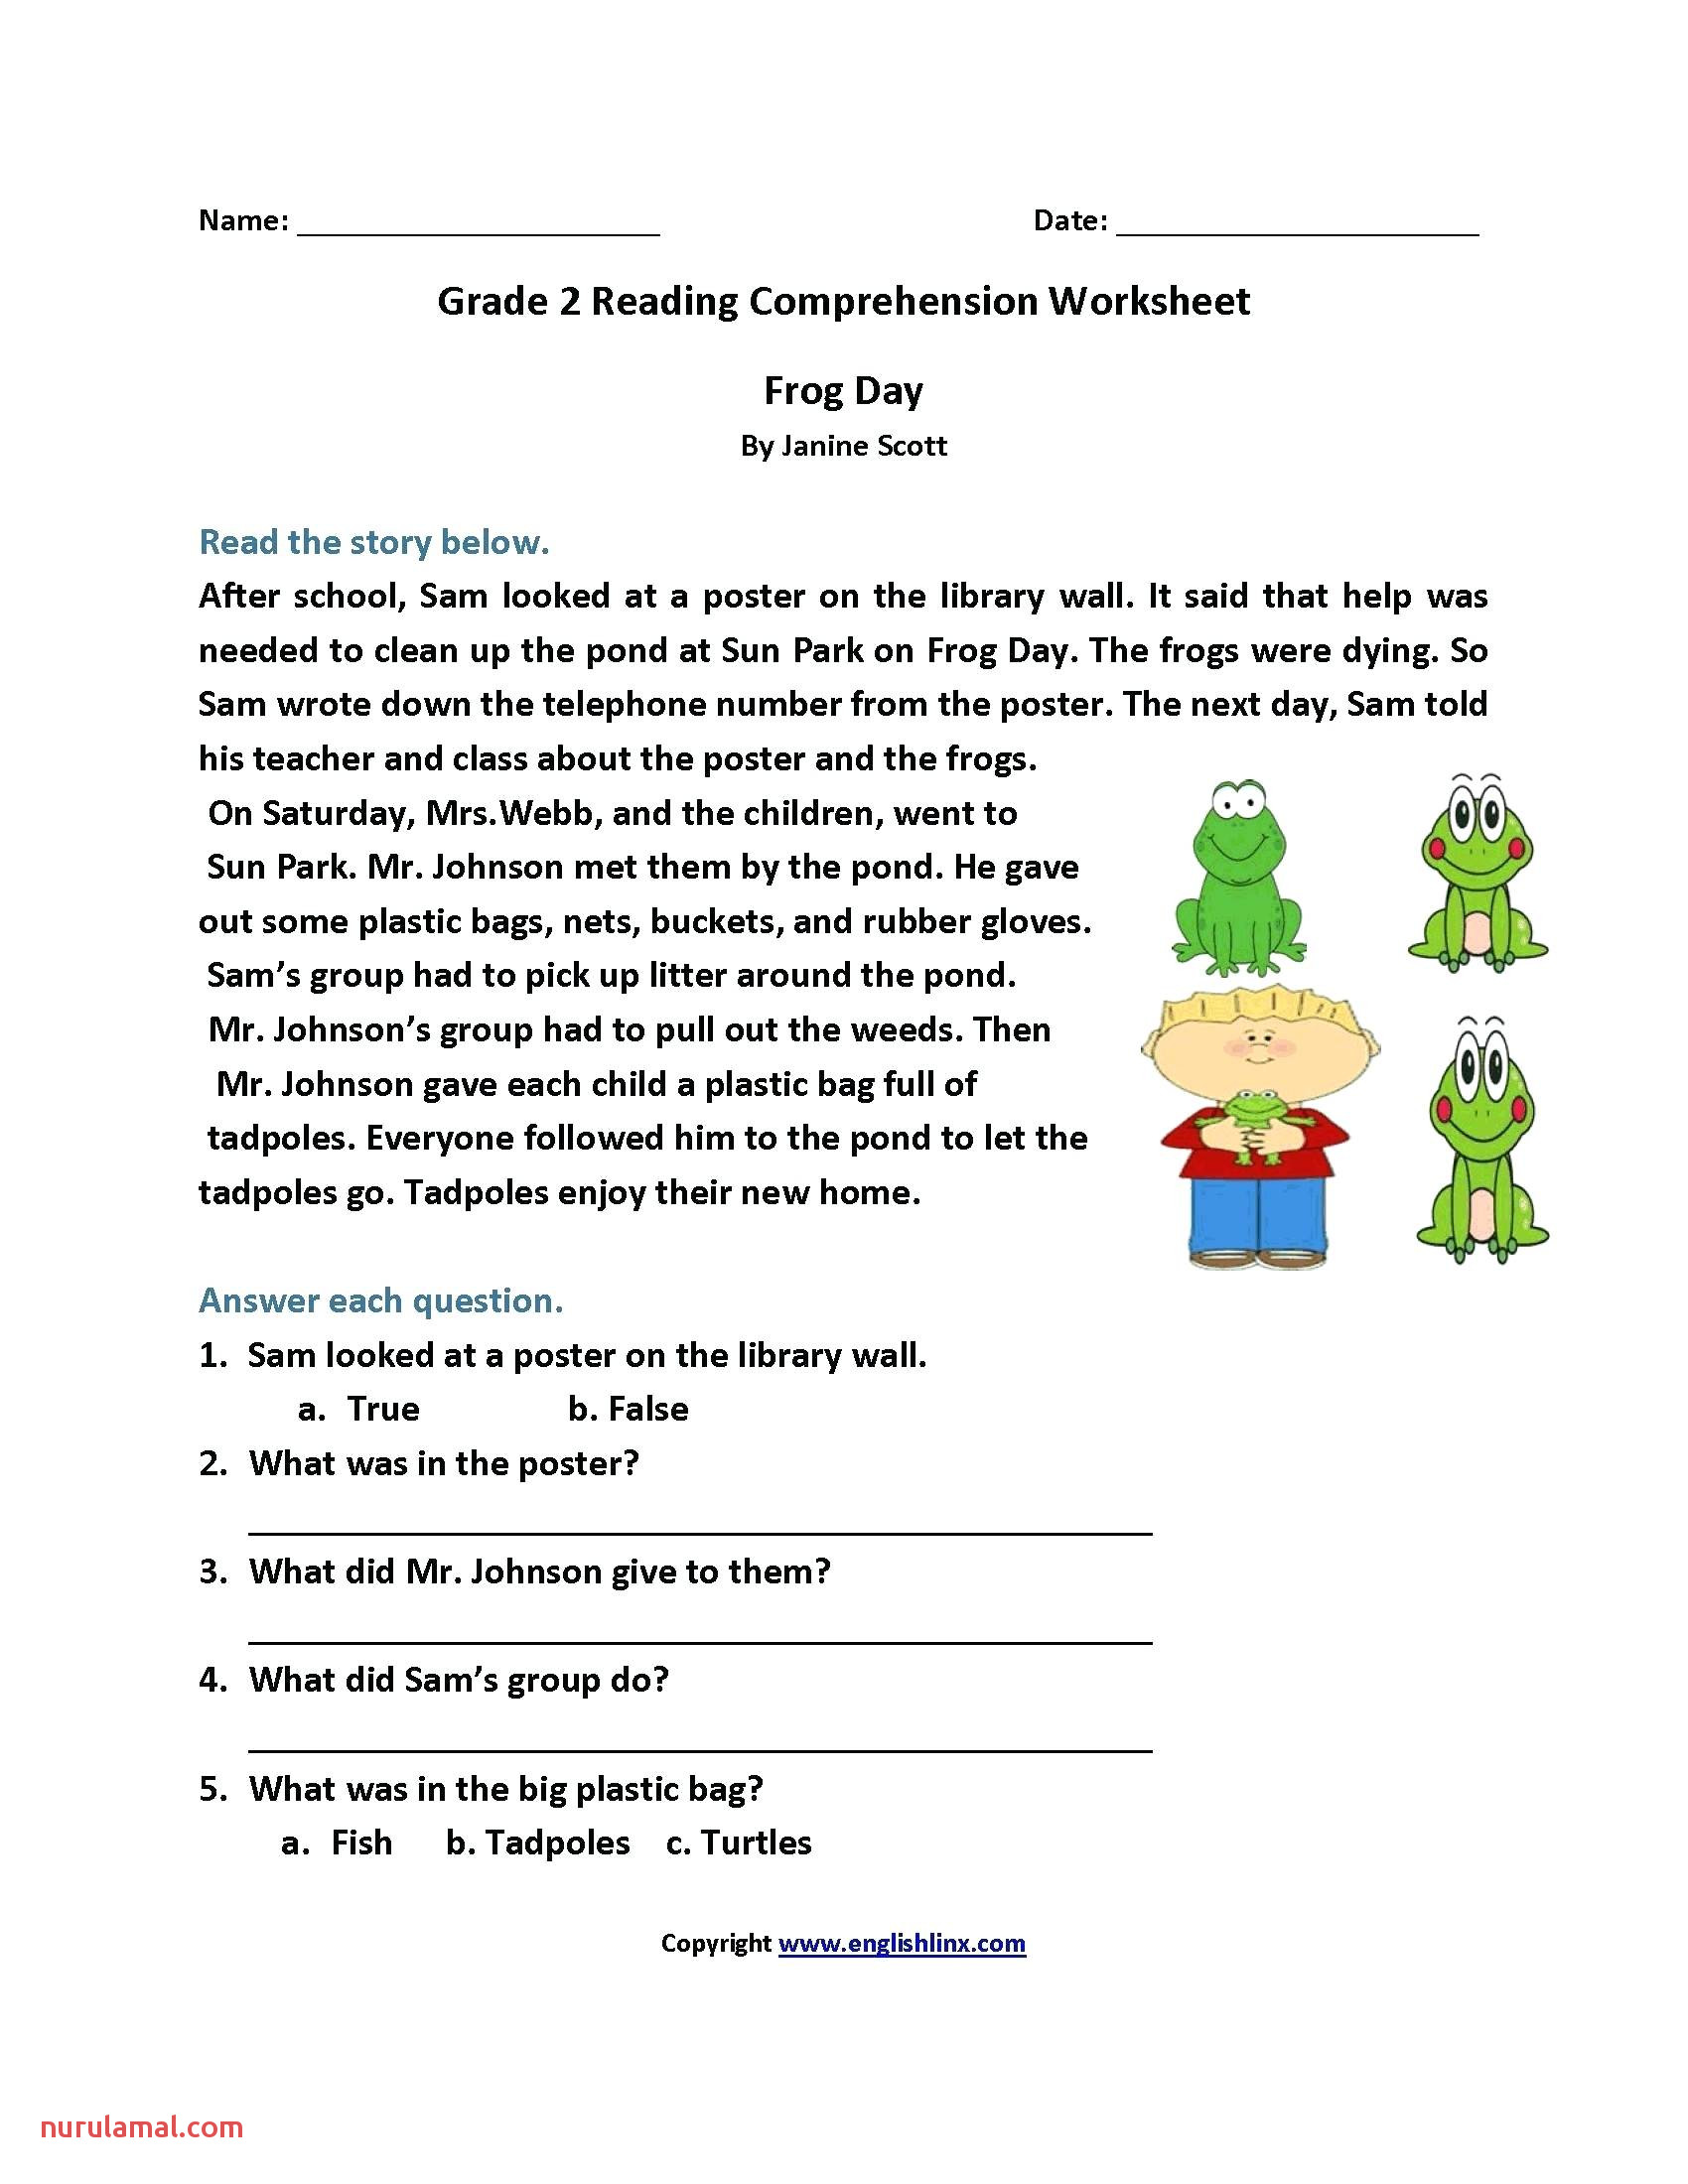 thanksgiving reading prehension worksheets math high middle school first grade pdf 1st 6th 4th worksheet 3rd english free printable preschool activity spanish alphabet simple present the